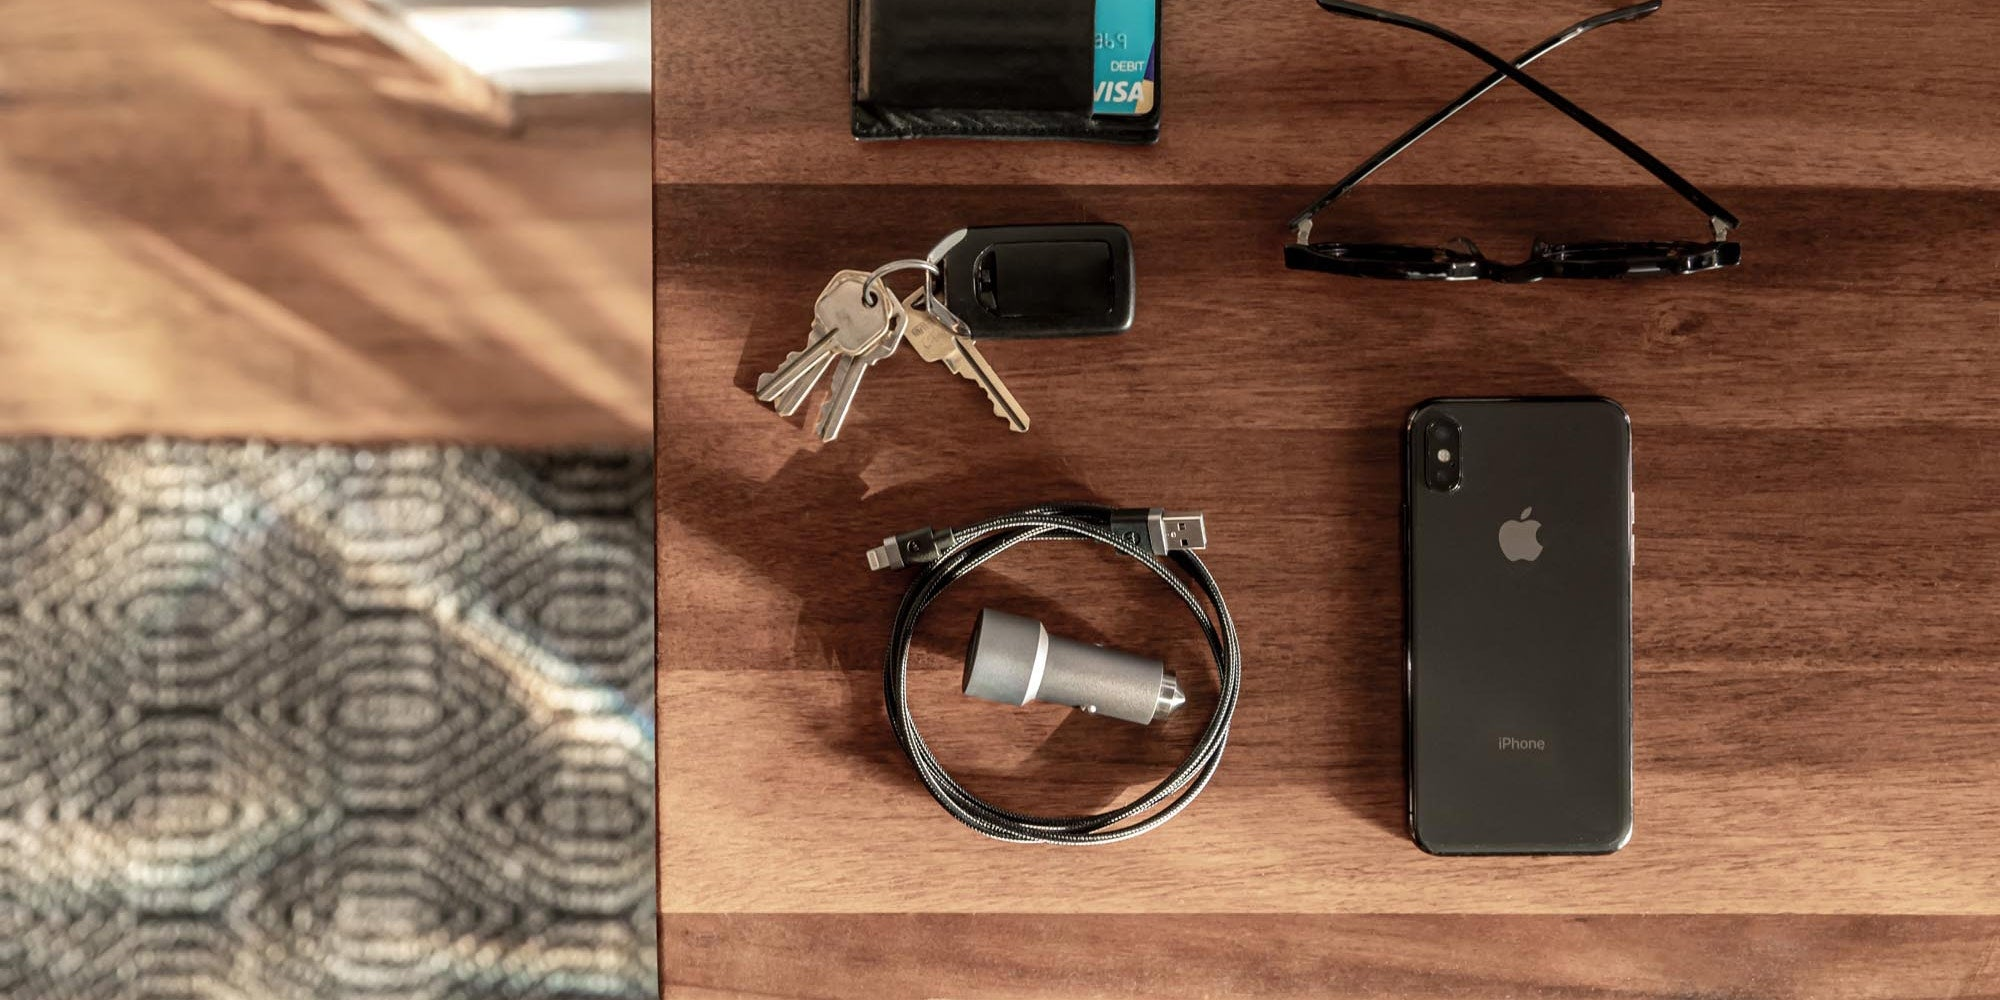 A mophie dual usb car charger on a table next to an iPhone and a set of keys